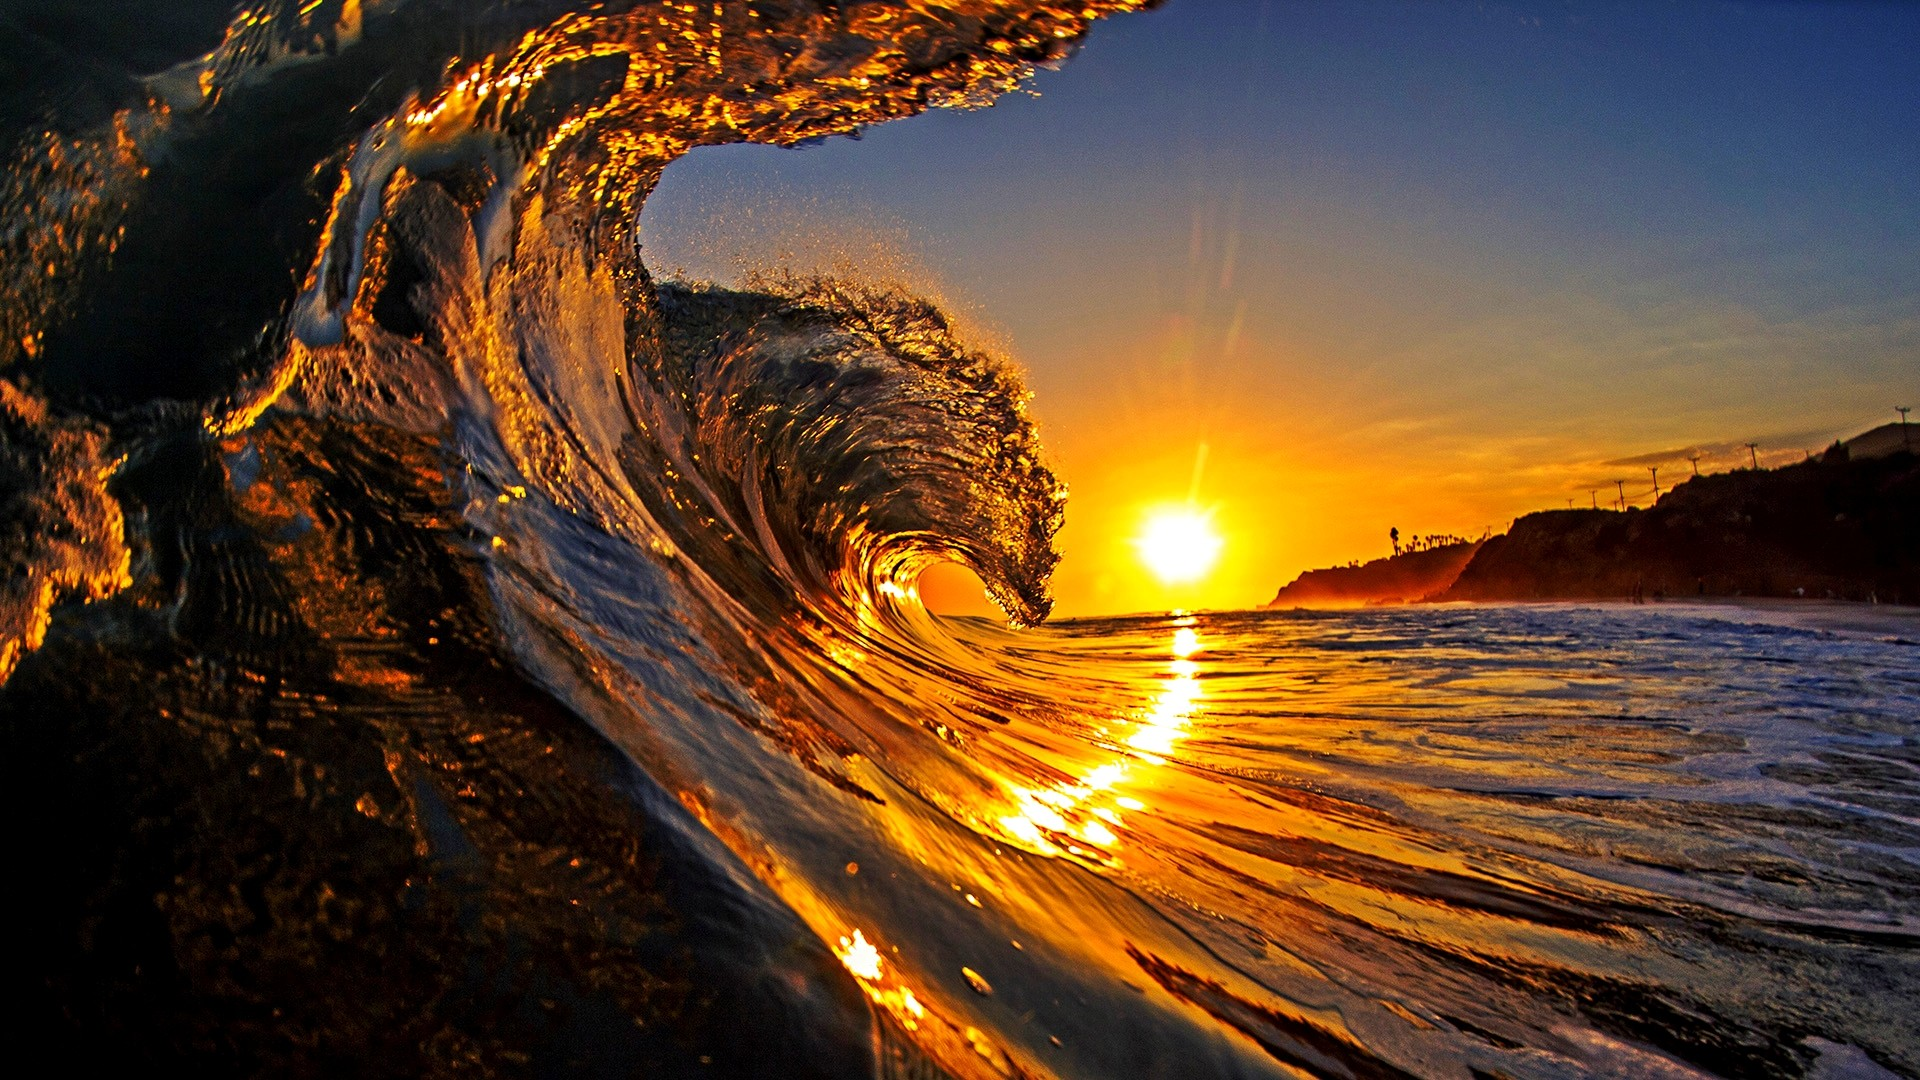 1920x1080 Wave Wallpaper Cool Desktop Background Wave 2014 Wallpaper Download